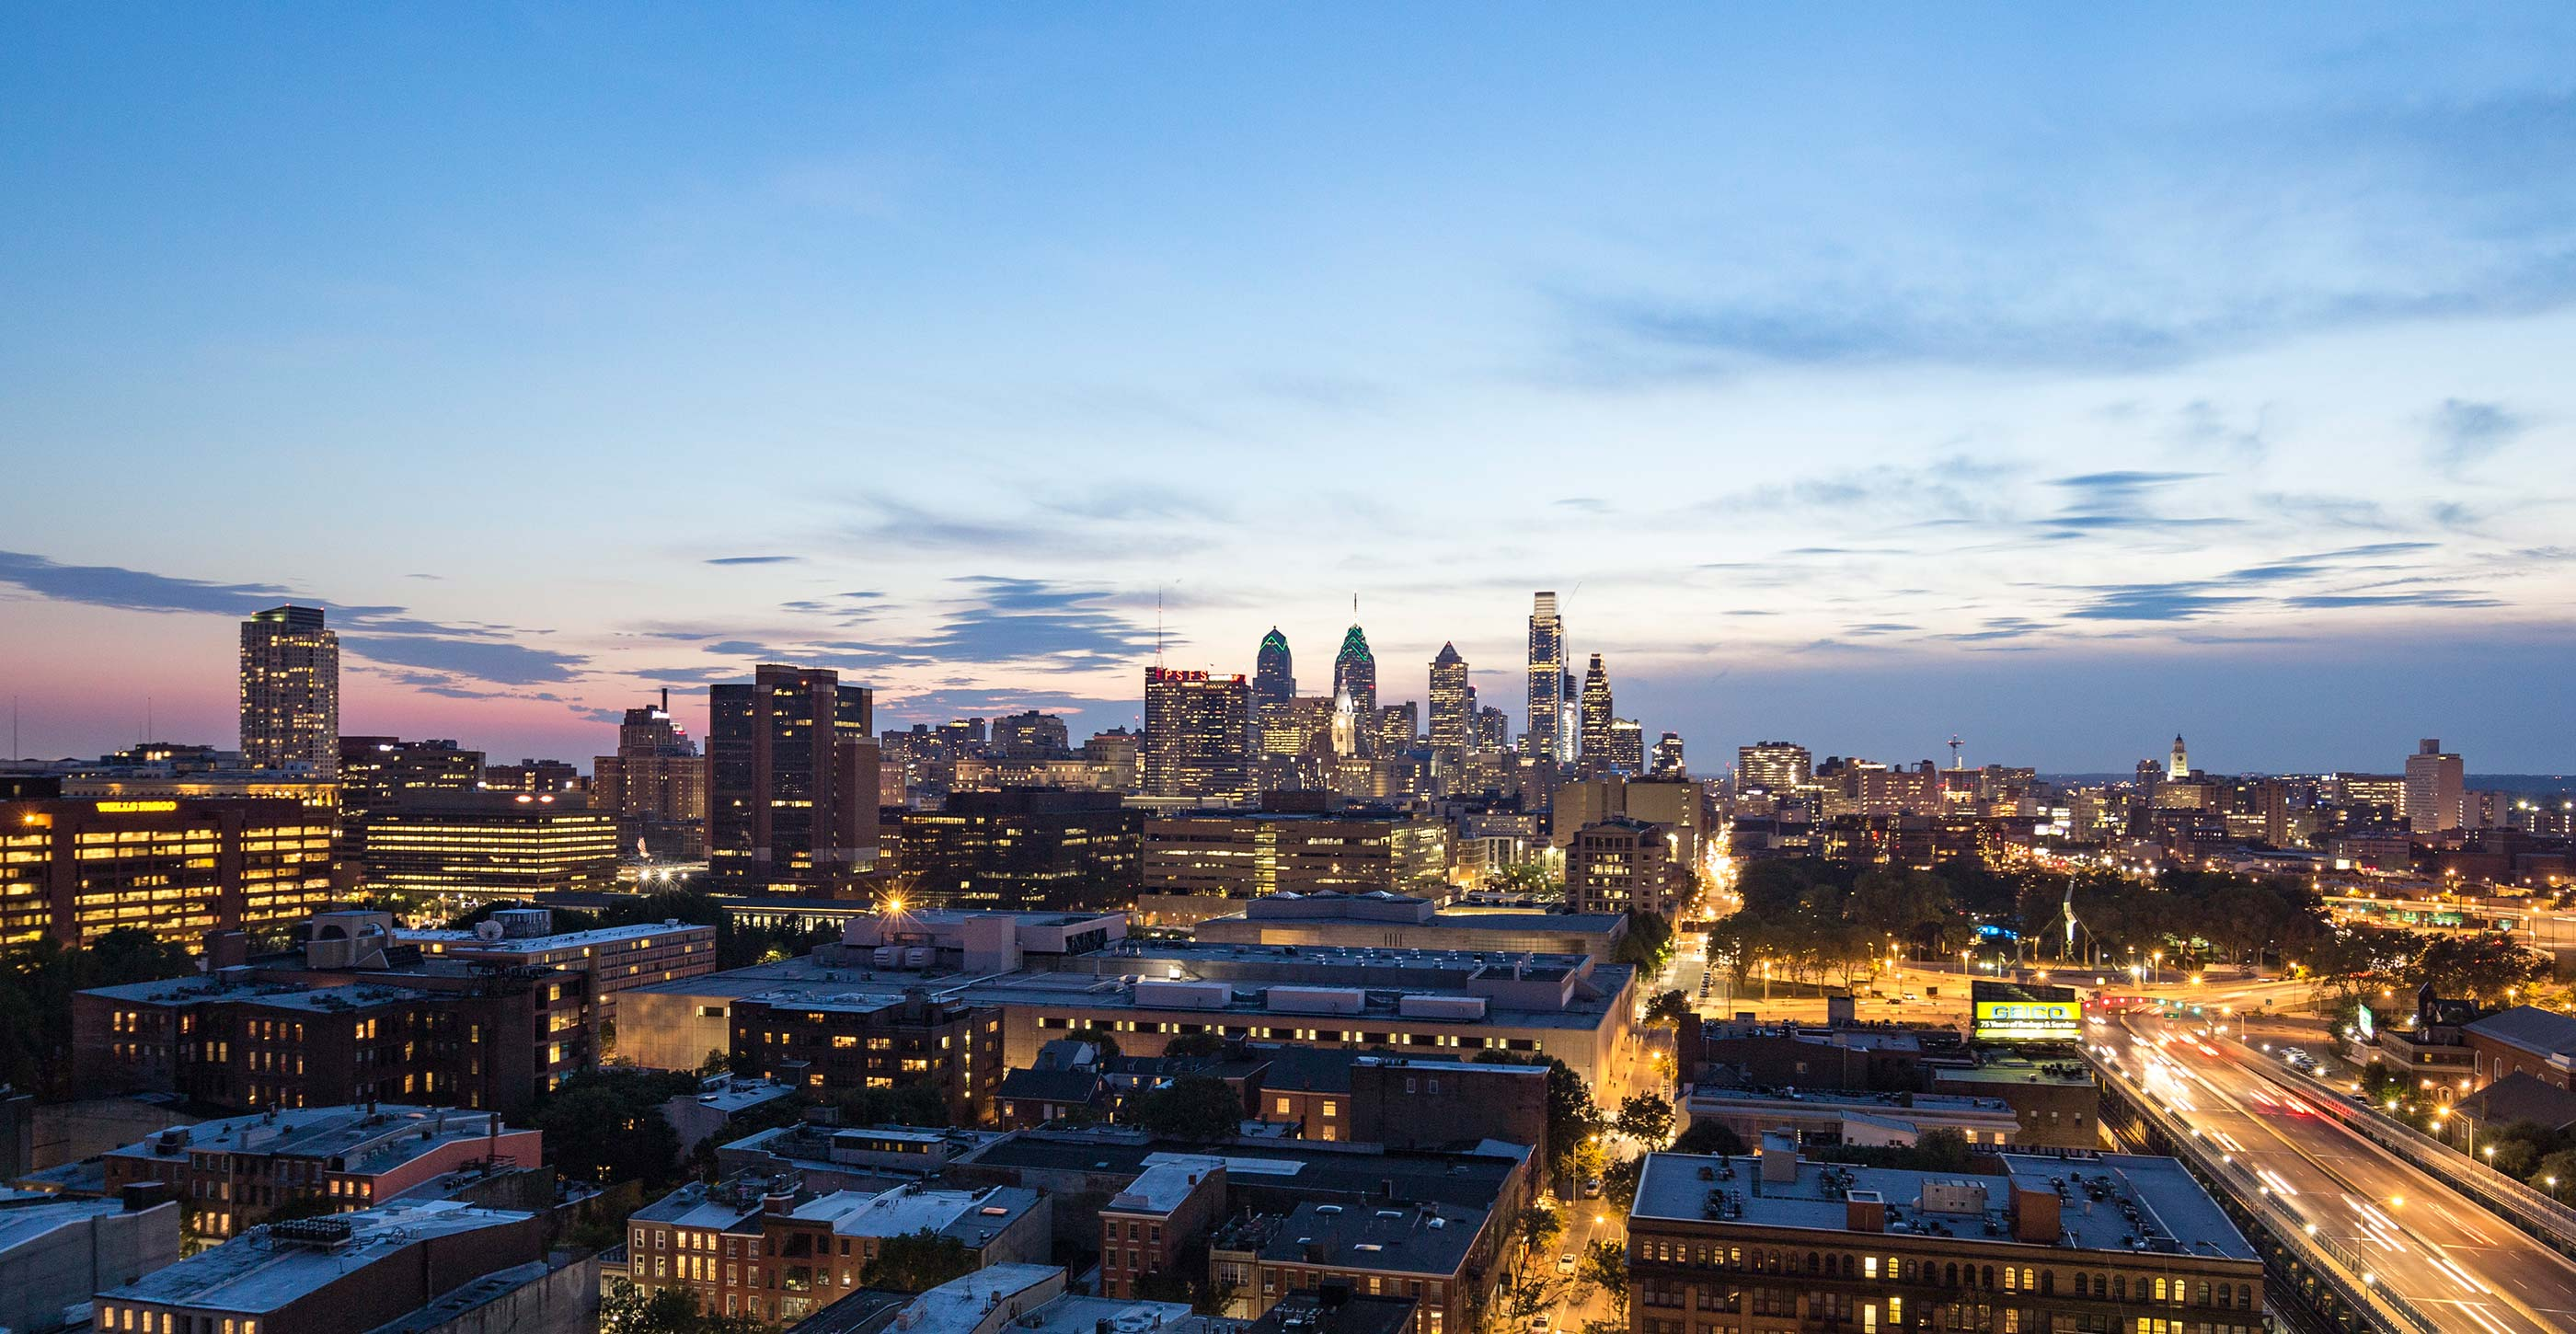 Nighttime view of Old City and downtown Philadelphia skyline